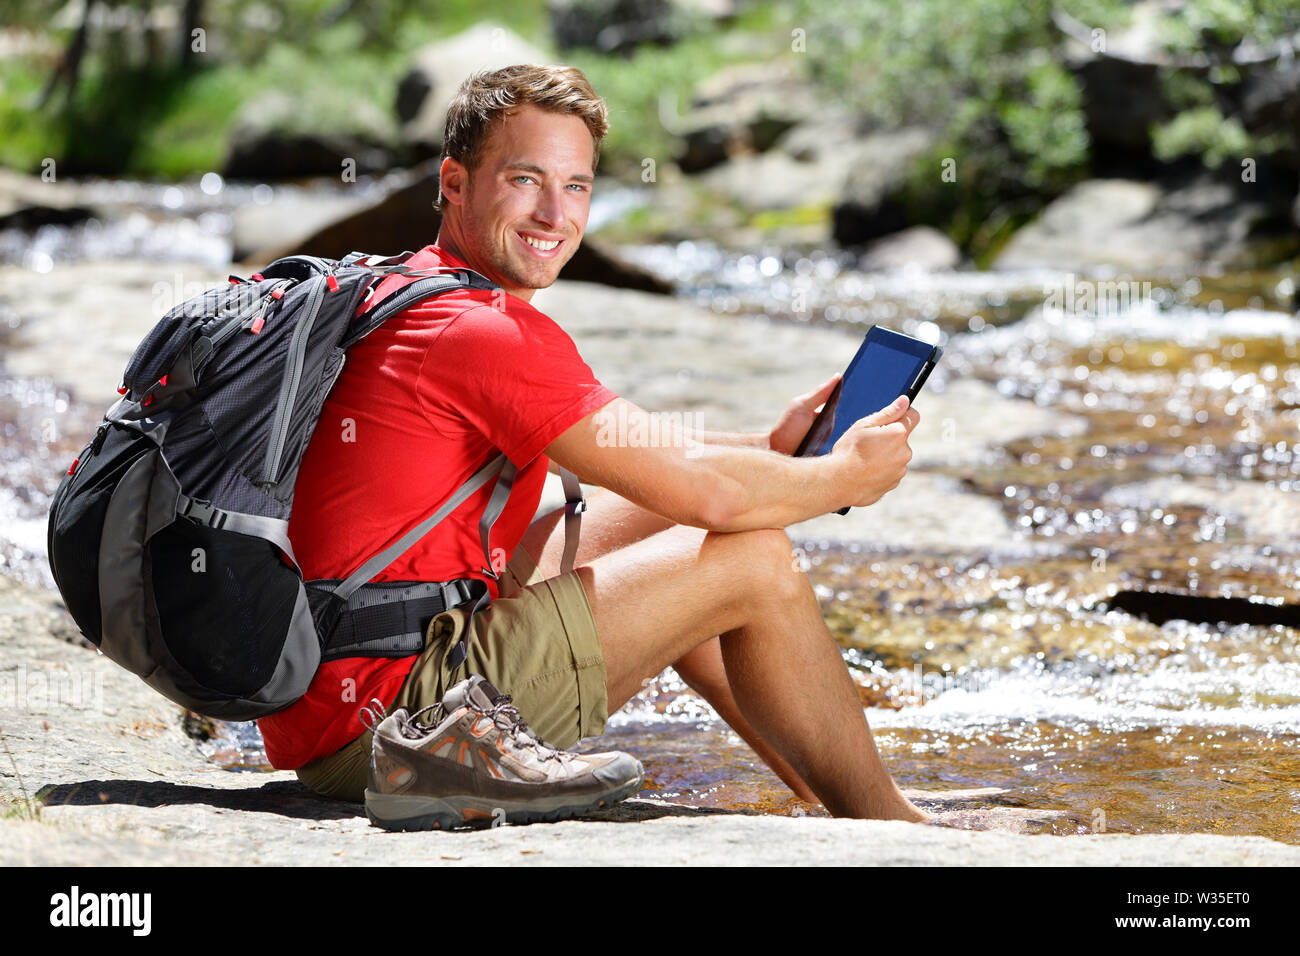 Tablet Computer Man Hiker Relaxing By River Holding Ebook Reader Reading E Book Or Map Hiking In Yosemite Usa Using Travel App Or Map During Hike Stock Photo Alamy